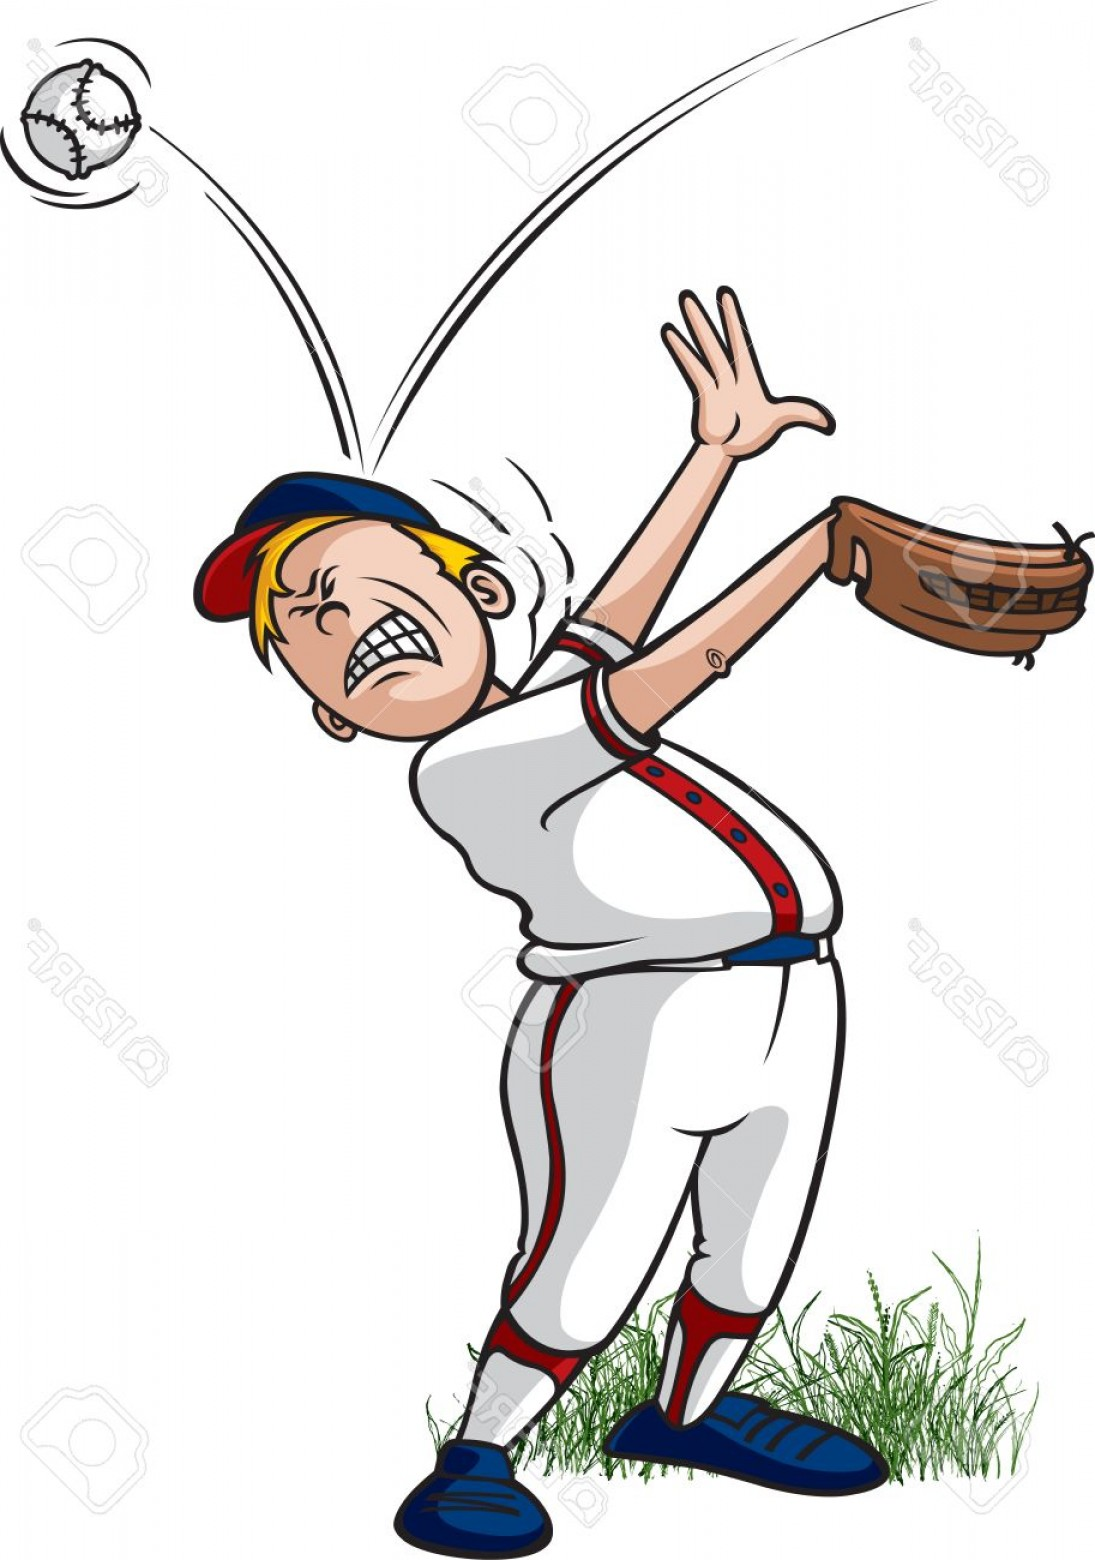 Little League Baseball Vector Logo No Text: Photostock Vector A Cartoon Little League Baseball Player Getting Hit On The Head By A Baseball